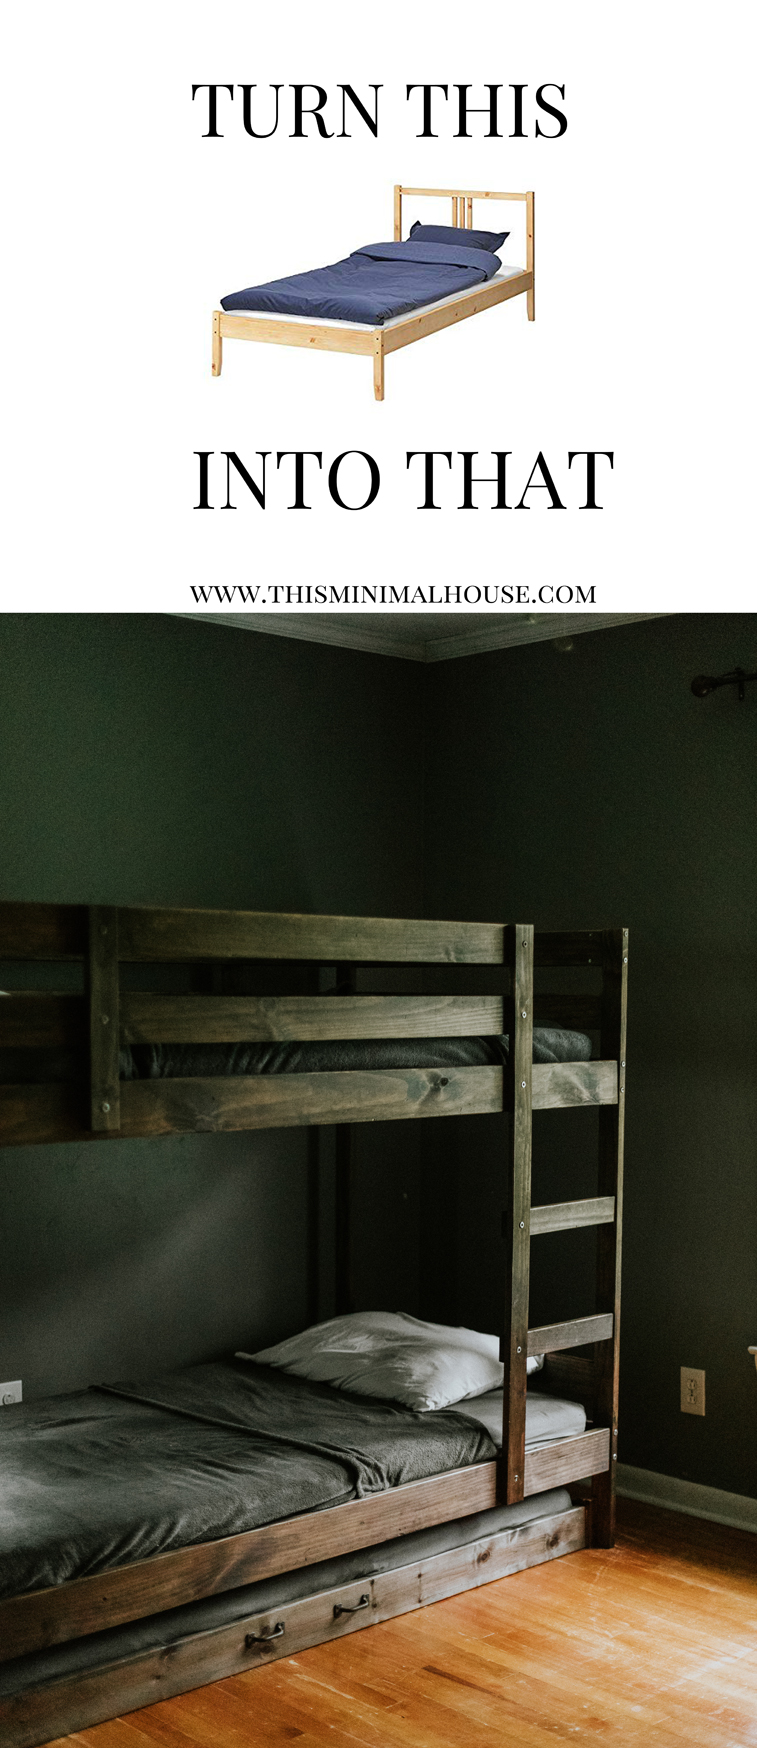 TURN THIS IKEA BED INTO THAT #ikeahack www.thisminimalhouse.com